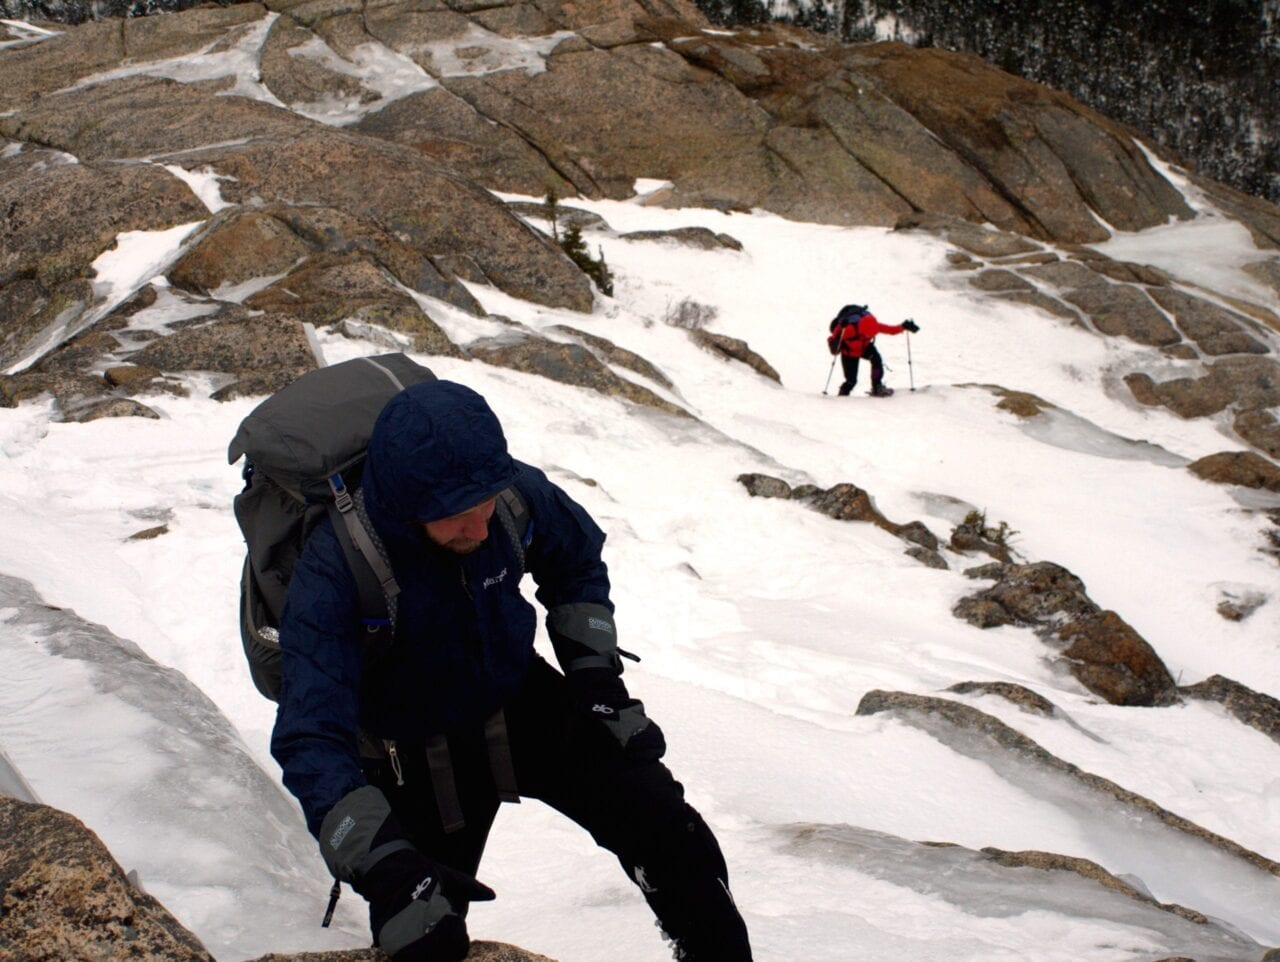 Two hikers climb through a snow field.